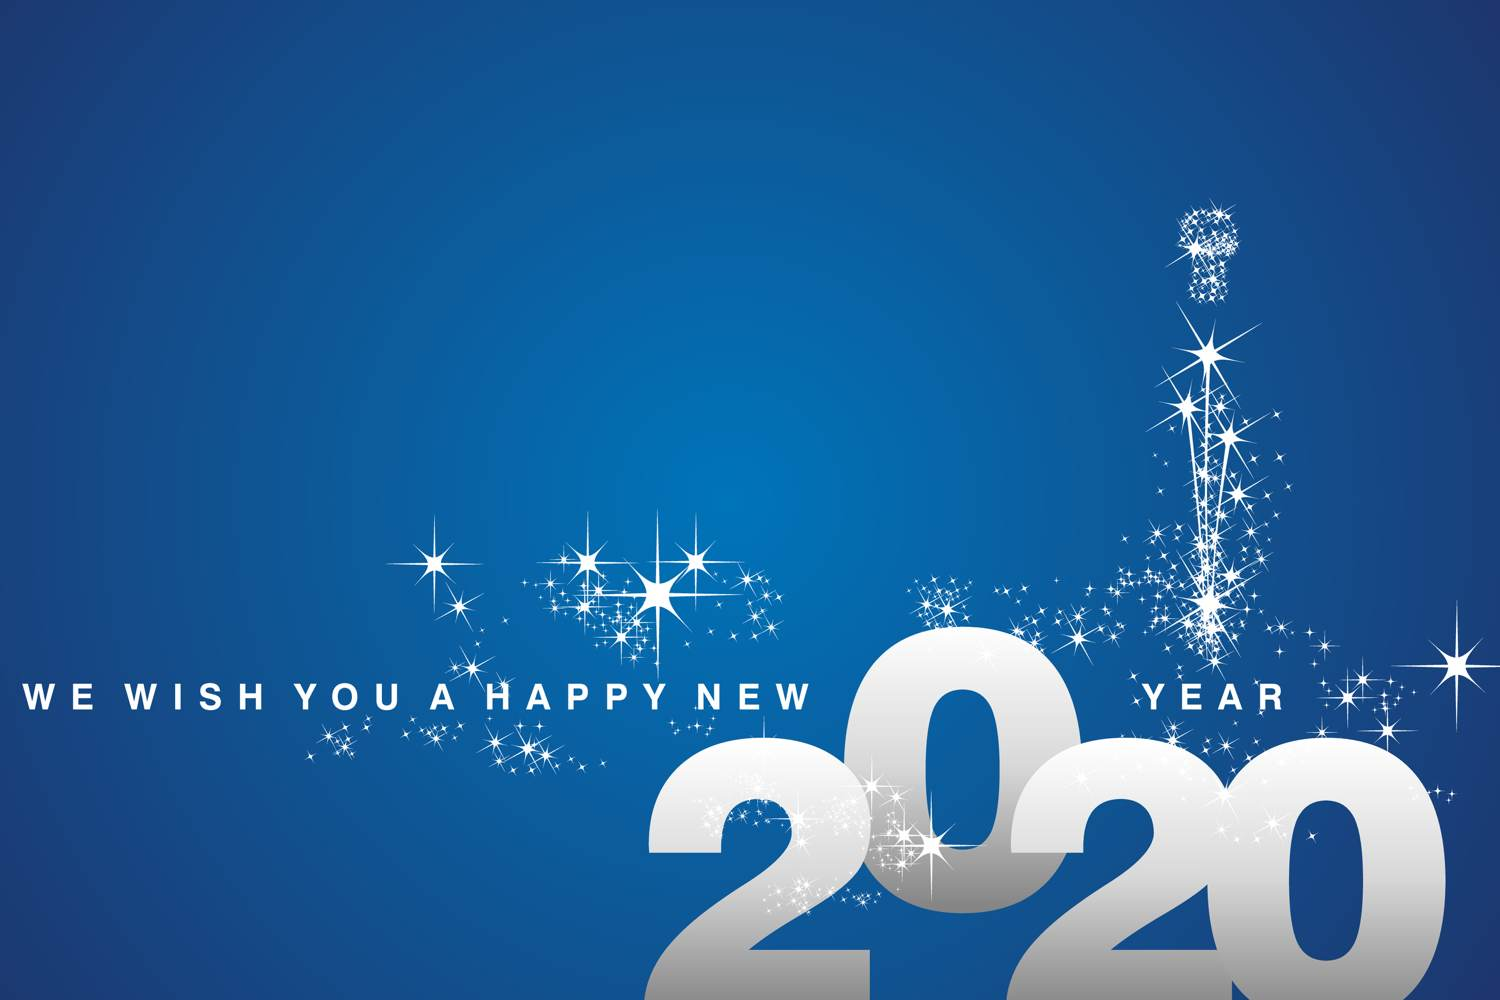 Happy new year in white font - blue background - sparkly stars decorating image